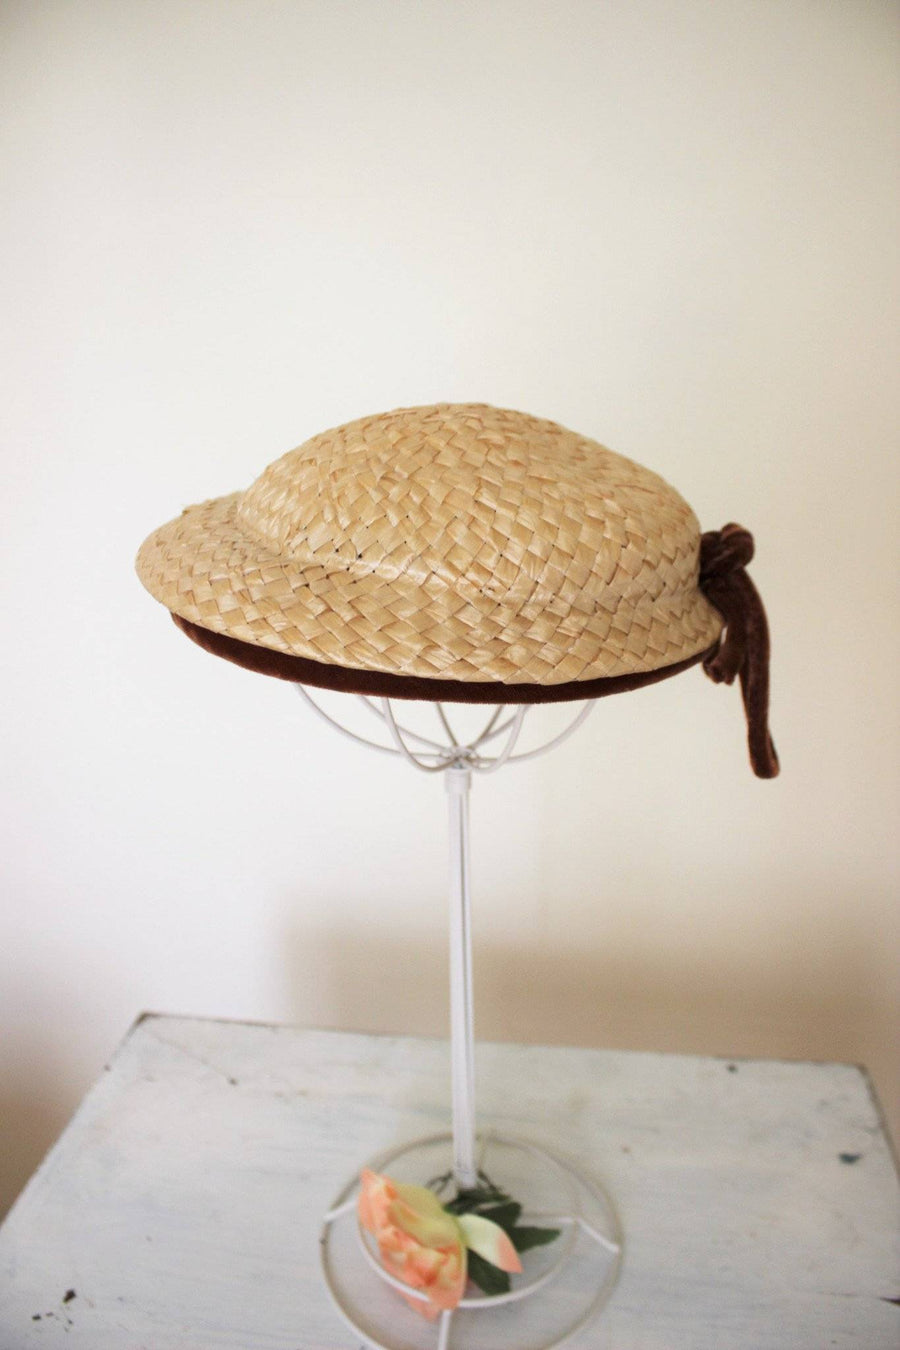 Vintage 1950s Bullock's Los Angeles Straw Hat, Brown Velvet Ribbon Trim